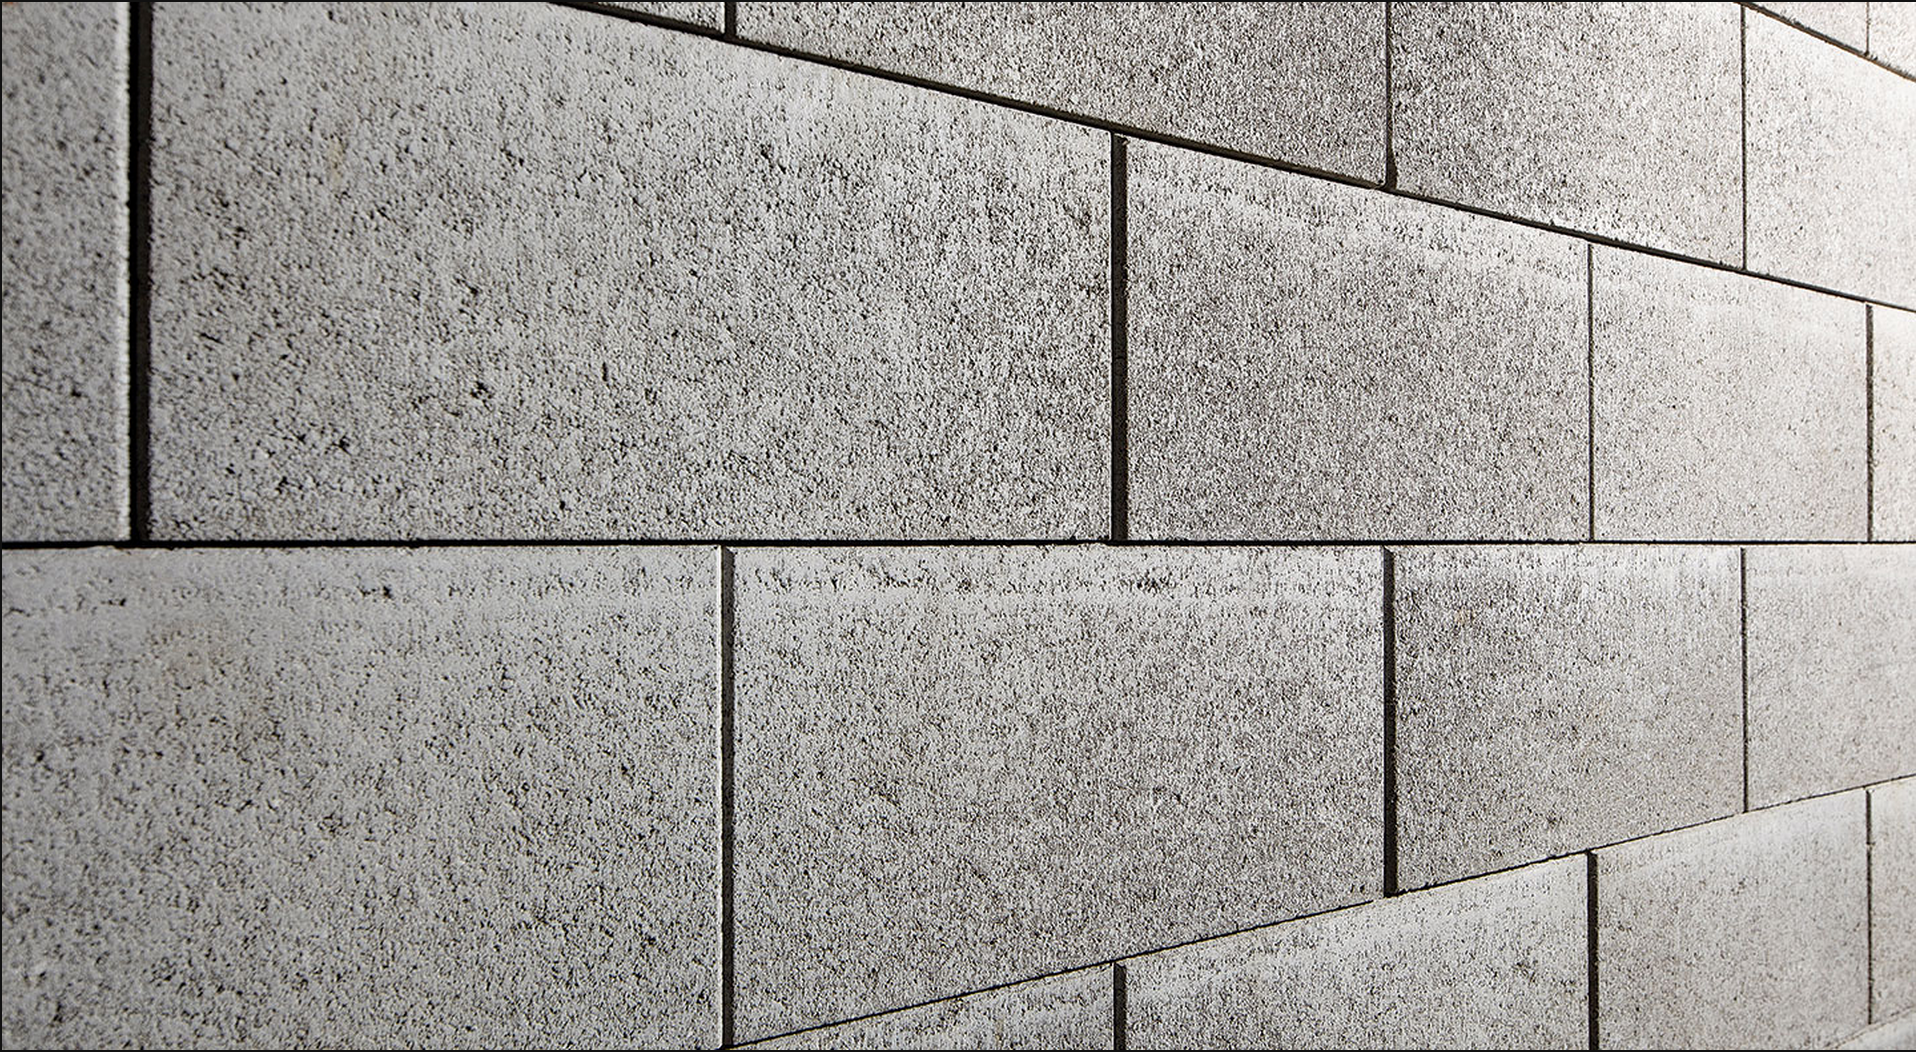 Versaloc Walling System This Innovative Masonry Walling System Is Great For Home Landscaping Projects No Mo Masonry Wall Concrete Bricks Stone Cladding